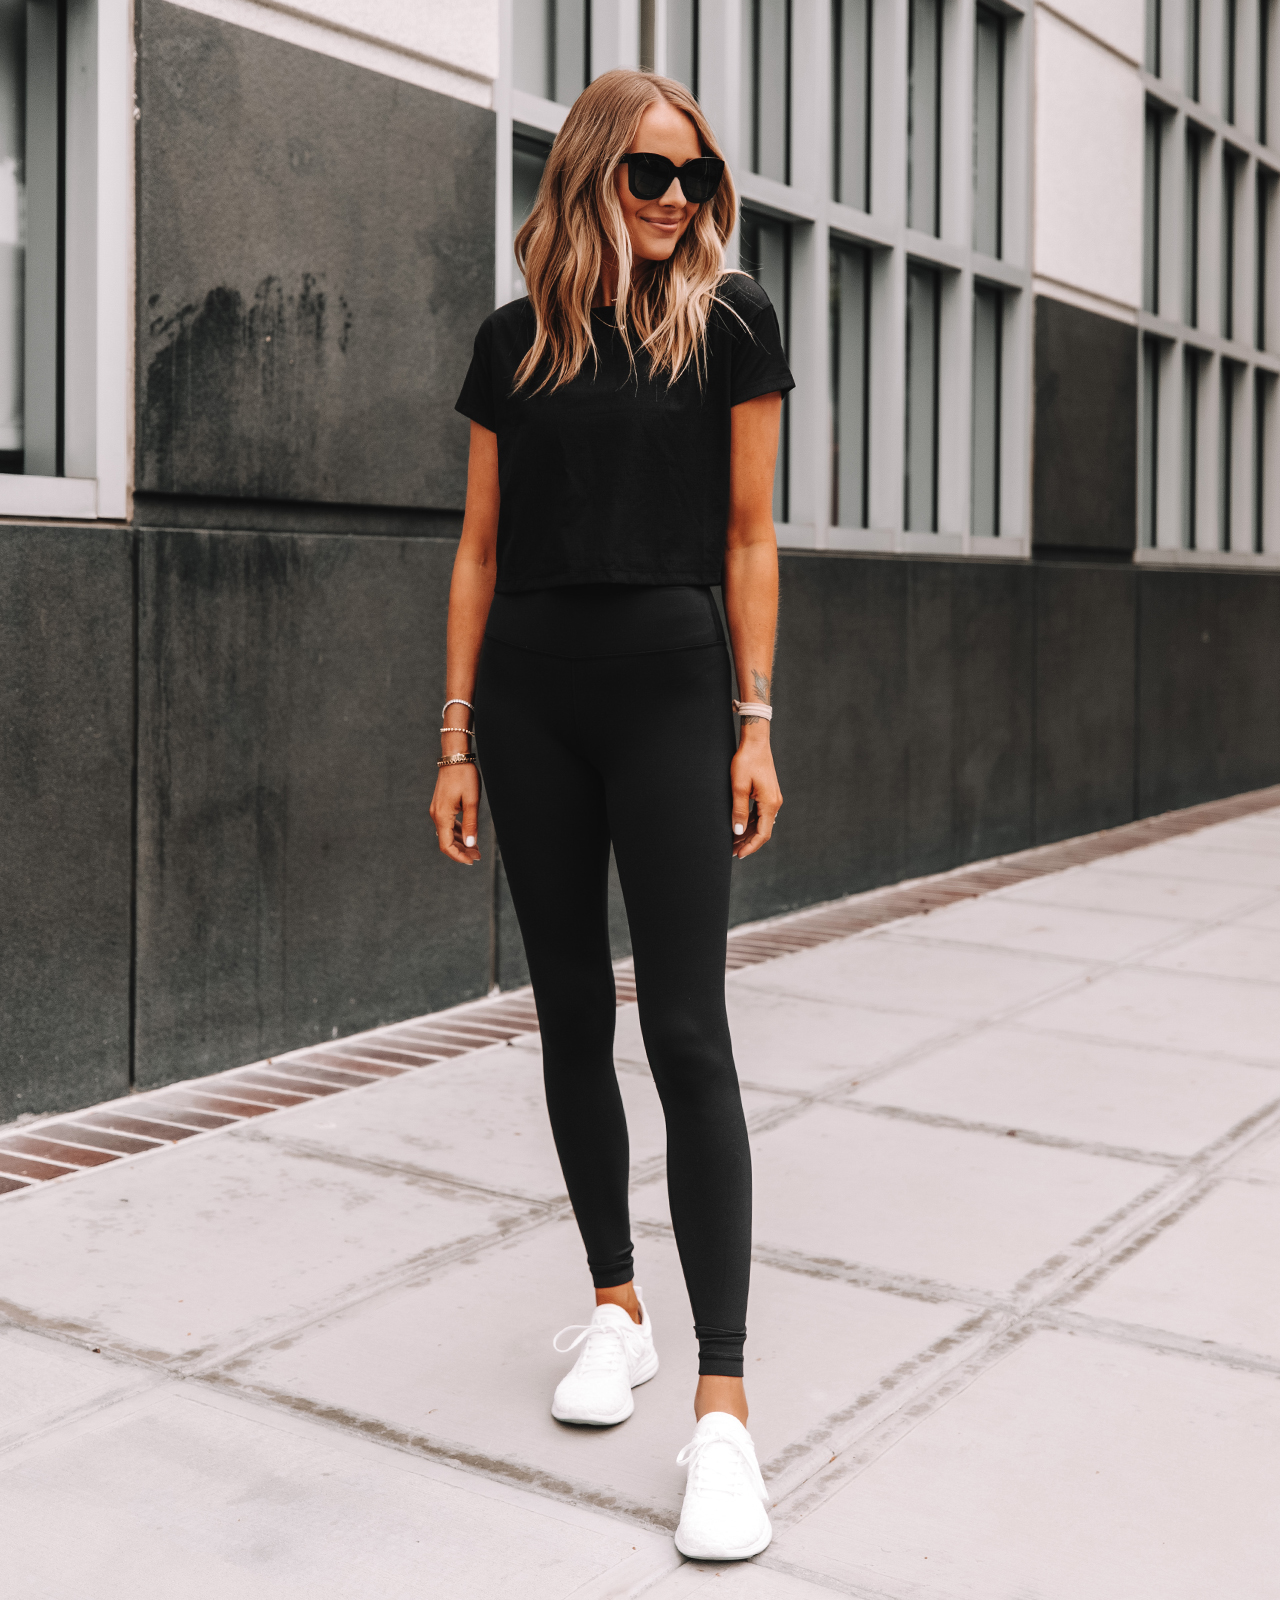 Fashion Jackson Wearing lululemon Align Black Leggings Black Workout Top APL White Sneakers